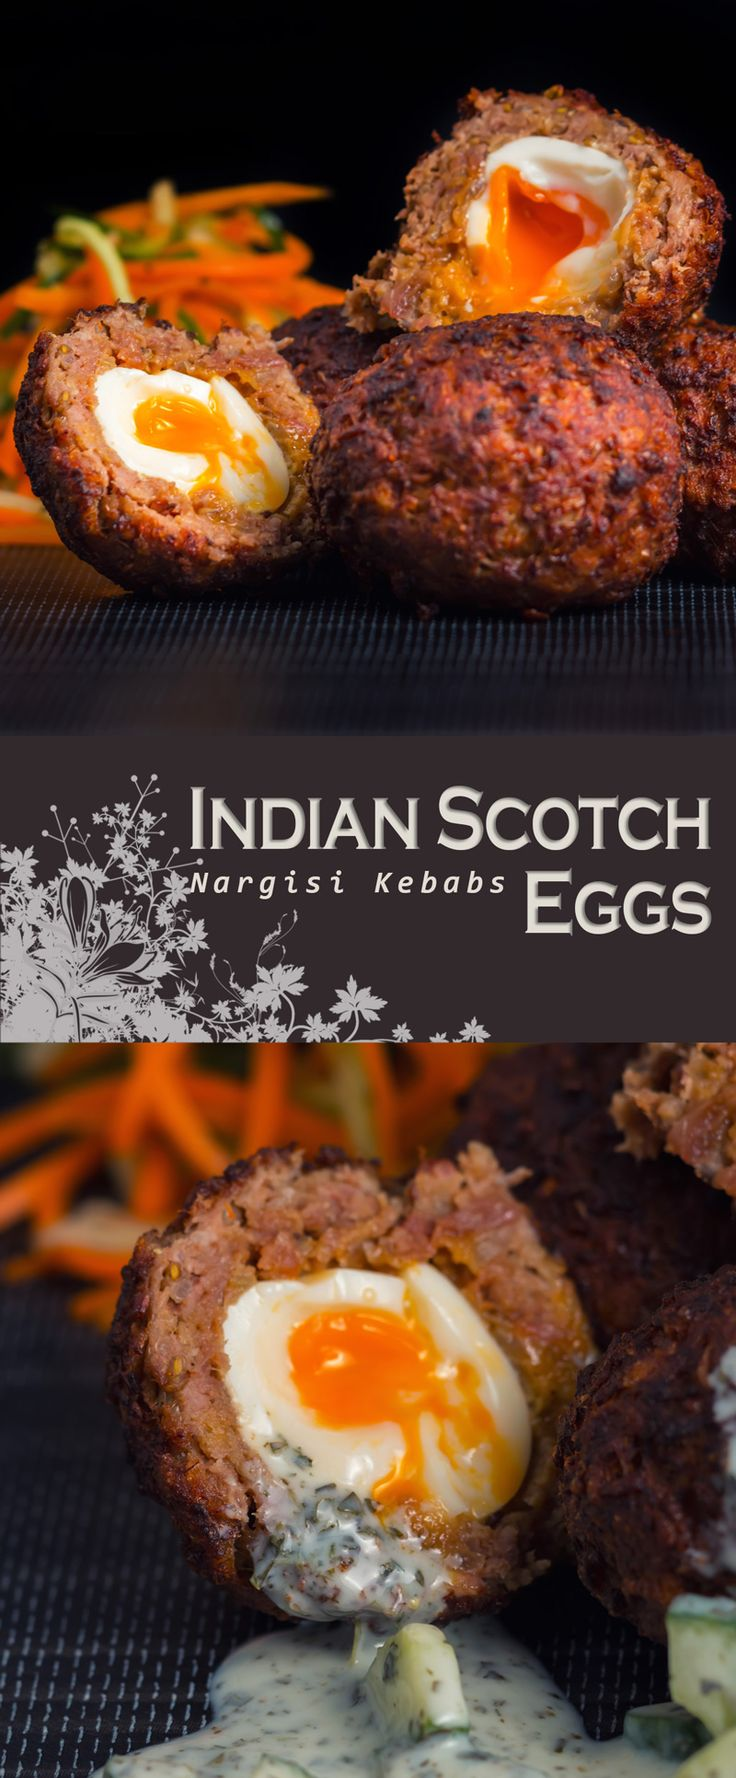 I love a classic scotch egg, so willing to give this a try!